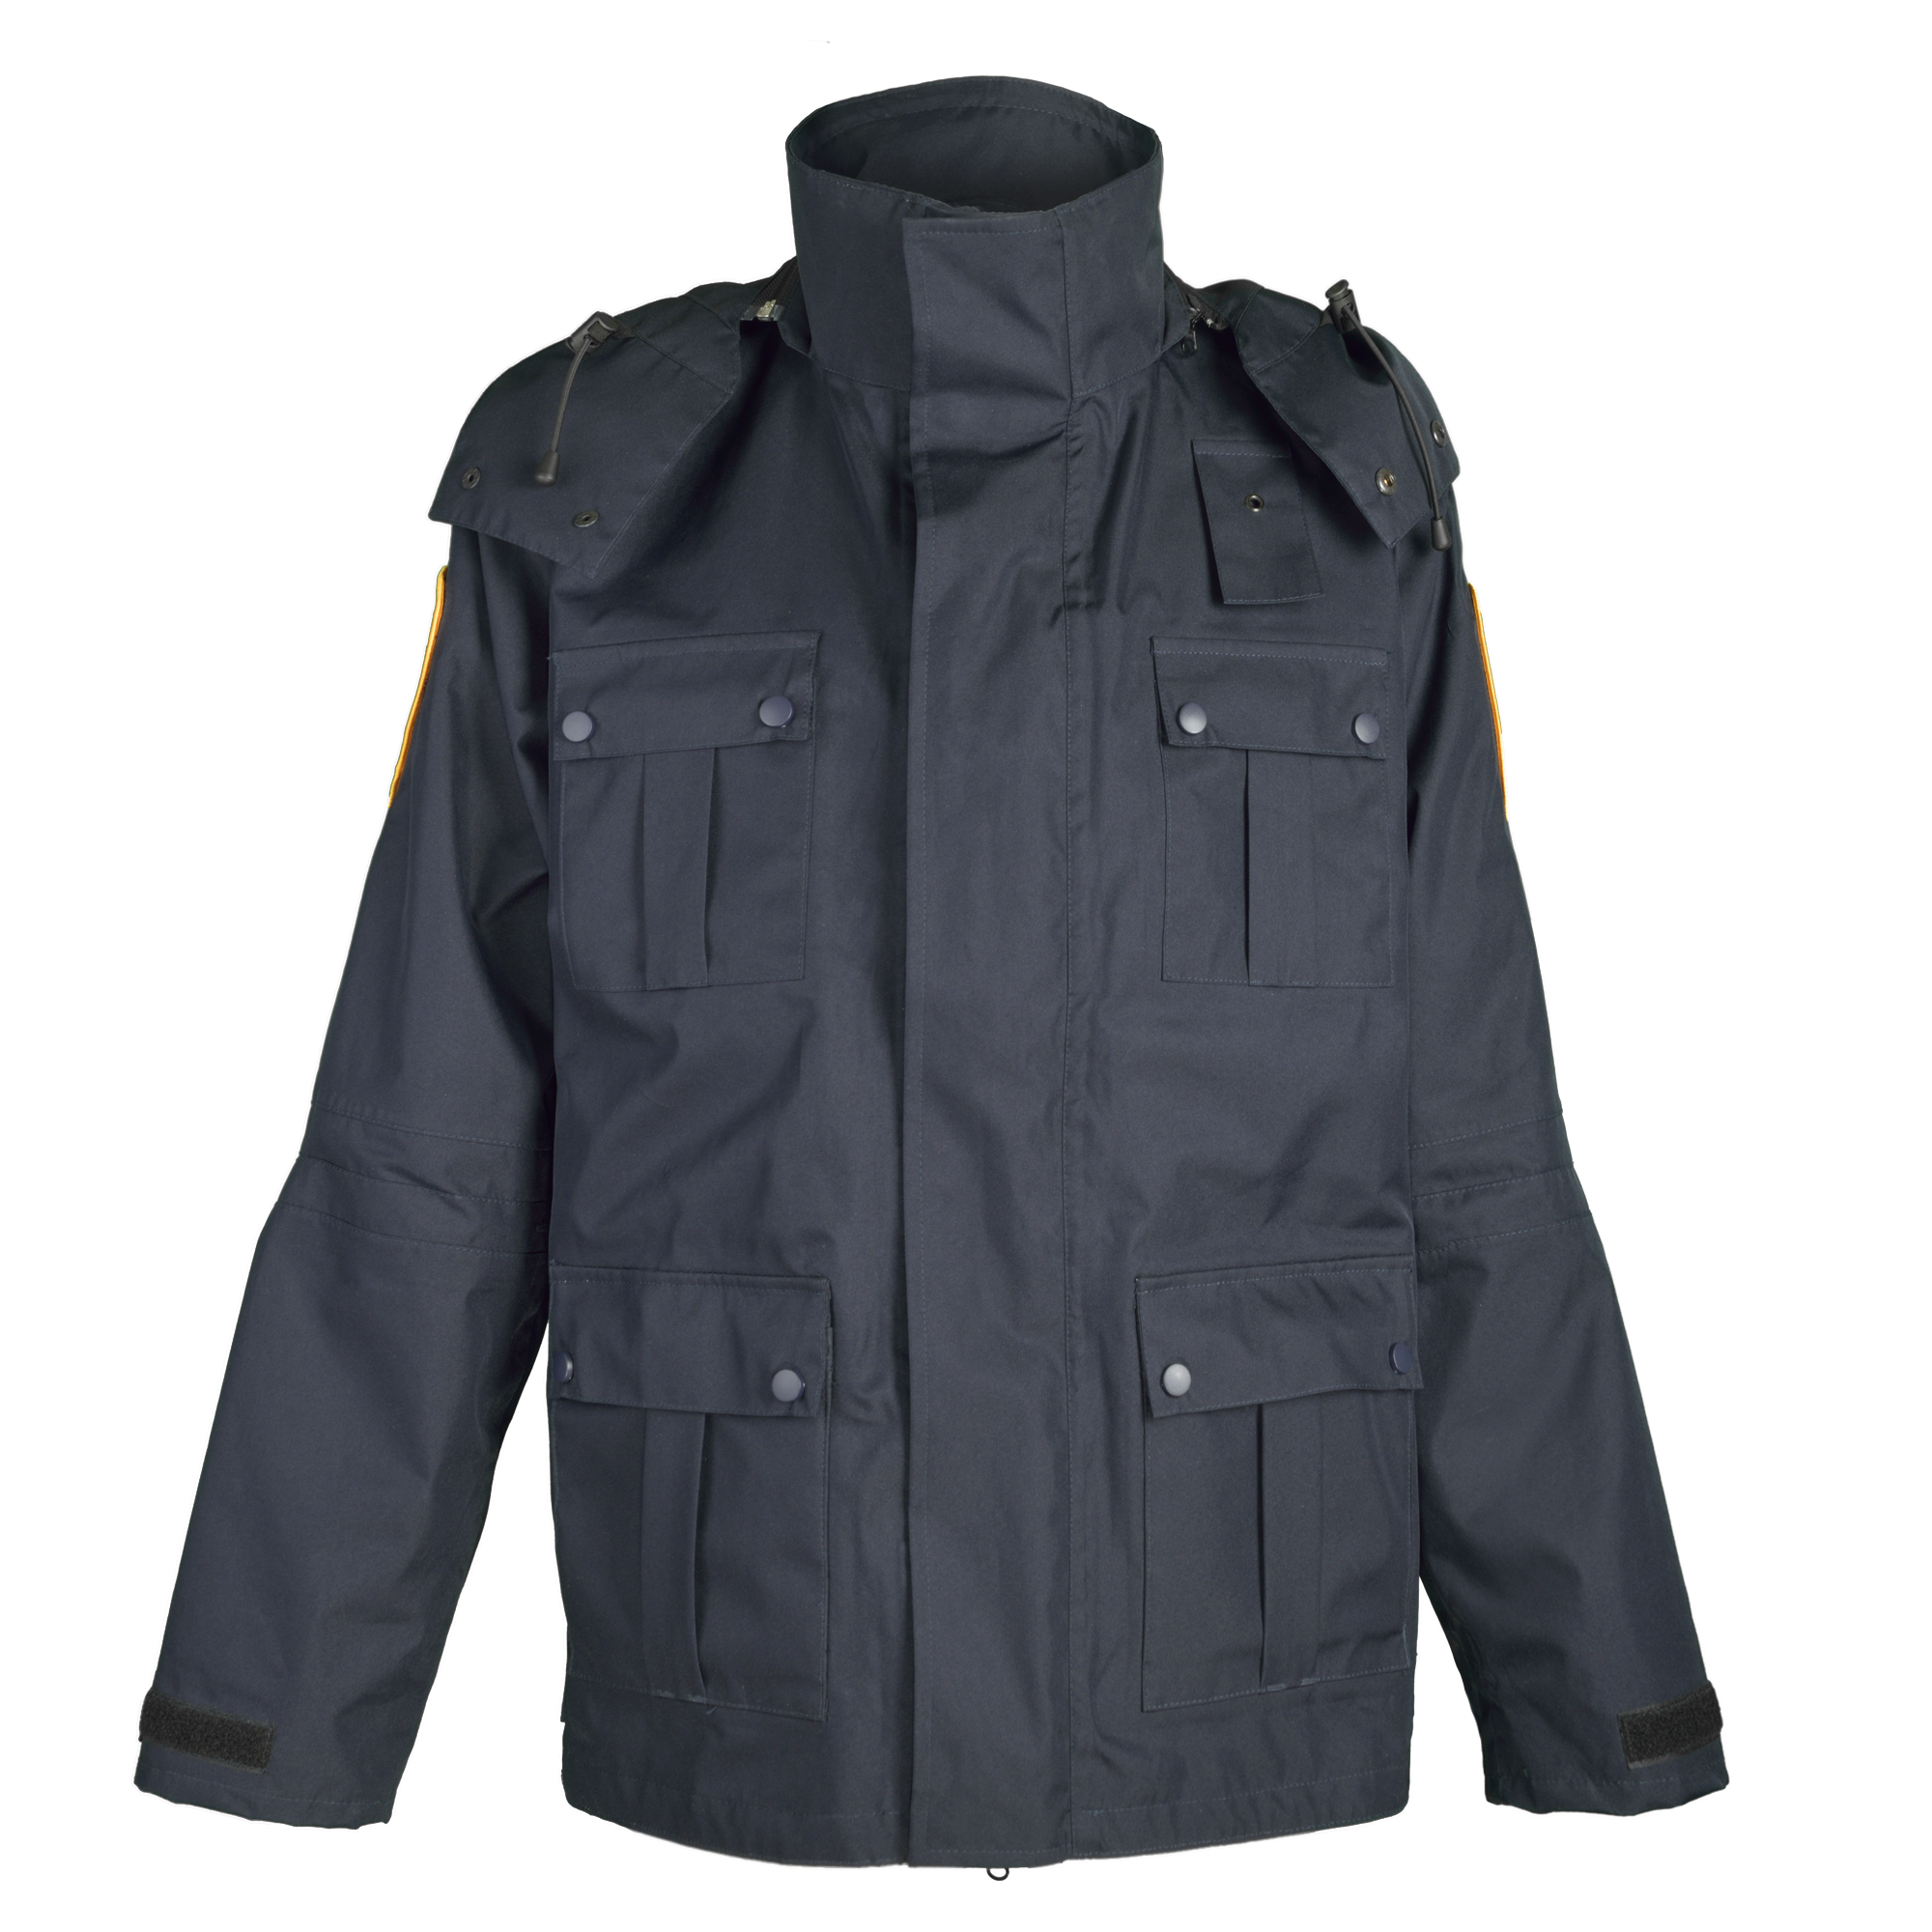 Winter official jacket with warming detachable lining